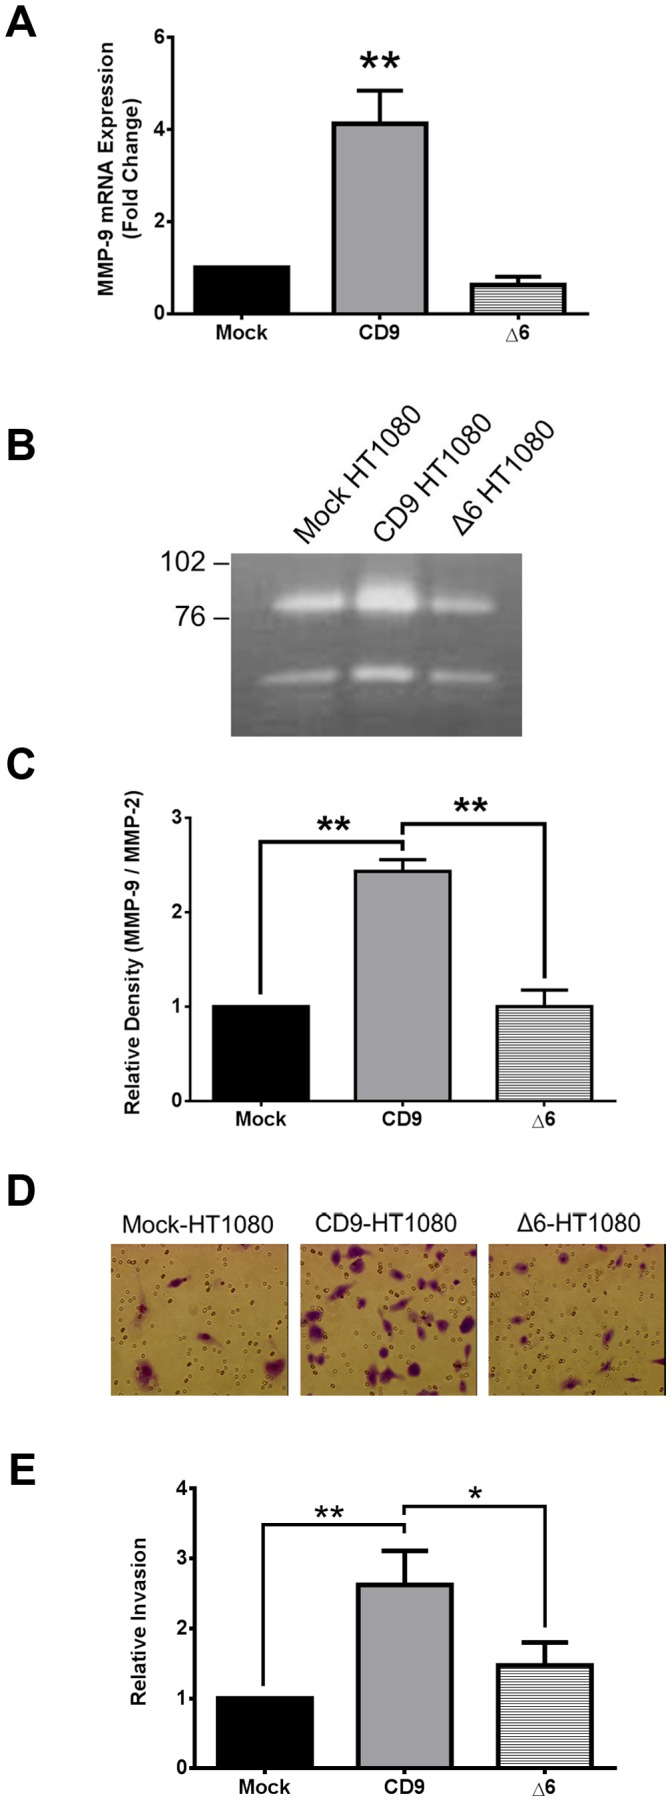 An increase in MMP-9 expression and release and subsequent cell invasion requires the second extracellular loop (EC2) of CD9. ( A ) MMP-9 mRNA expression was measured in Mock-, CD9-, and Δ6-HT1080 cells using qRT-PCR ( B,C ) Release of pro-MMP-9 and pro-MMP-2 was measured by gelatin zymography and quantified using Image J. ( D,E ) A representative picture of cell invasion through matrigel coated inserts and relative quantification of cell invasion *, p